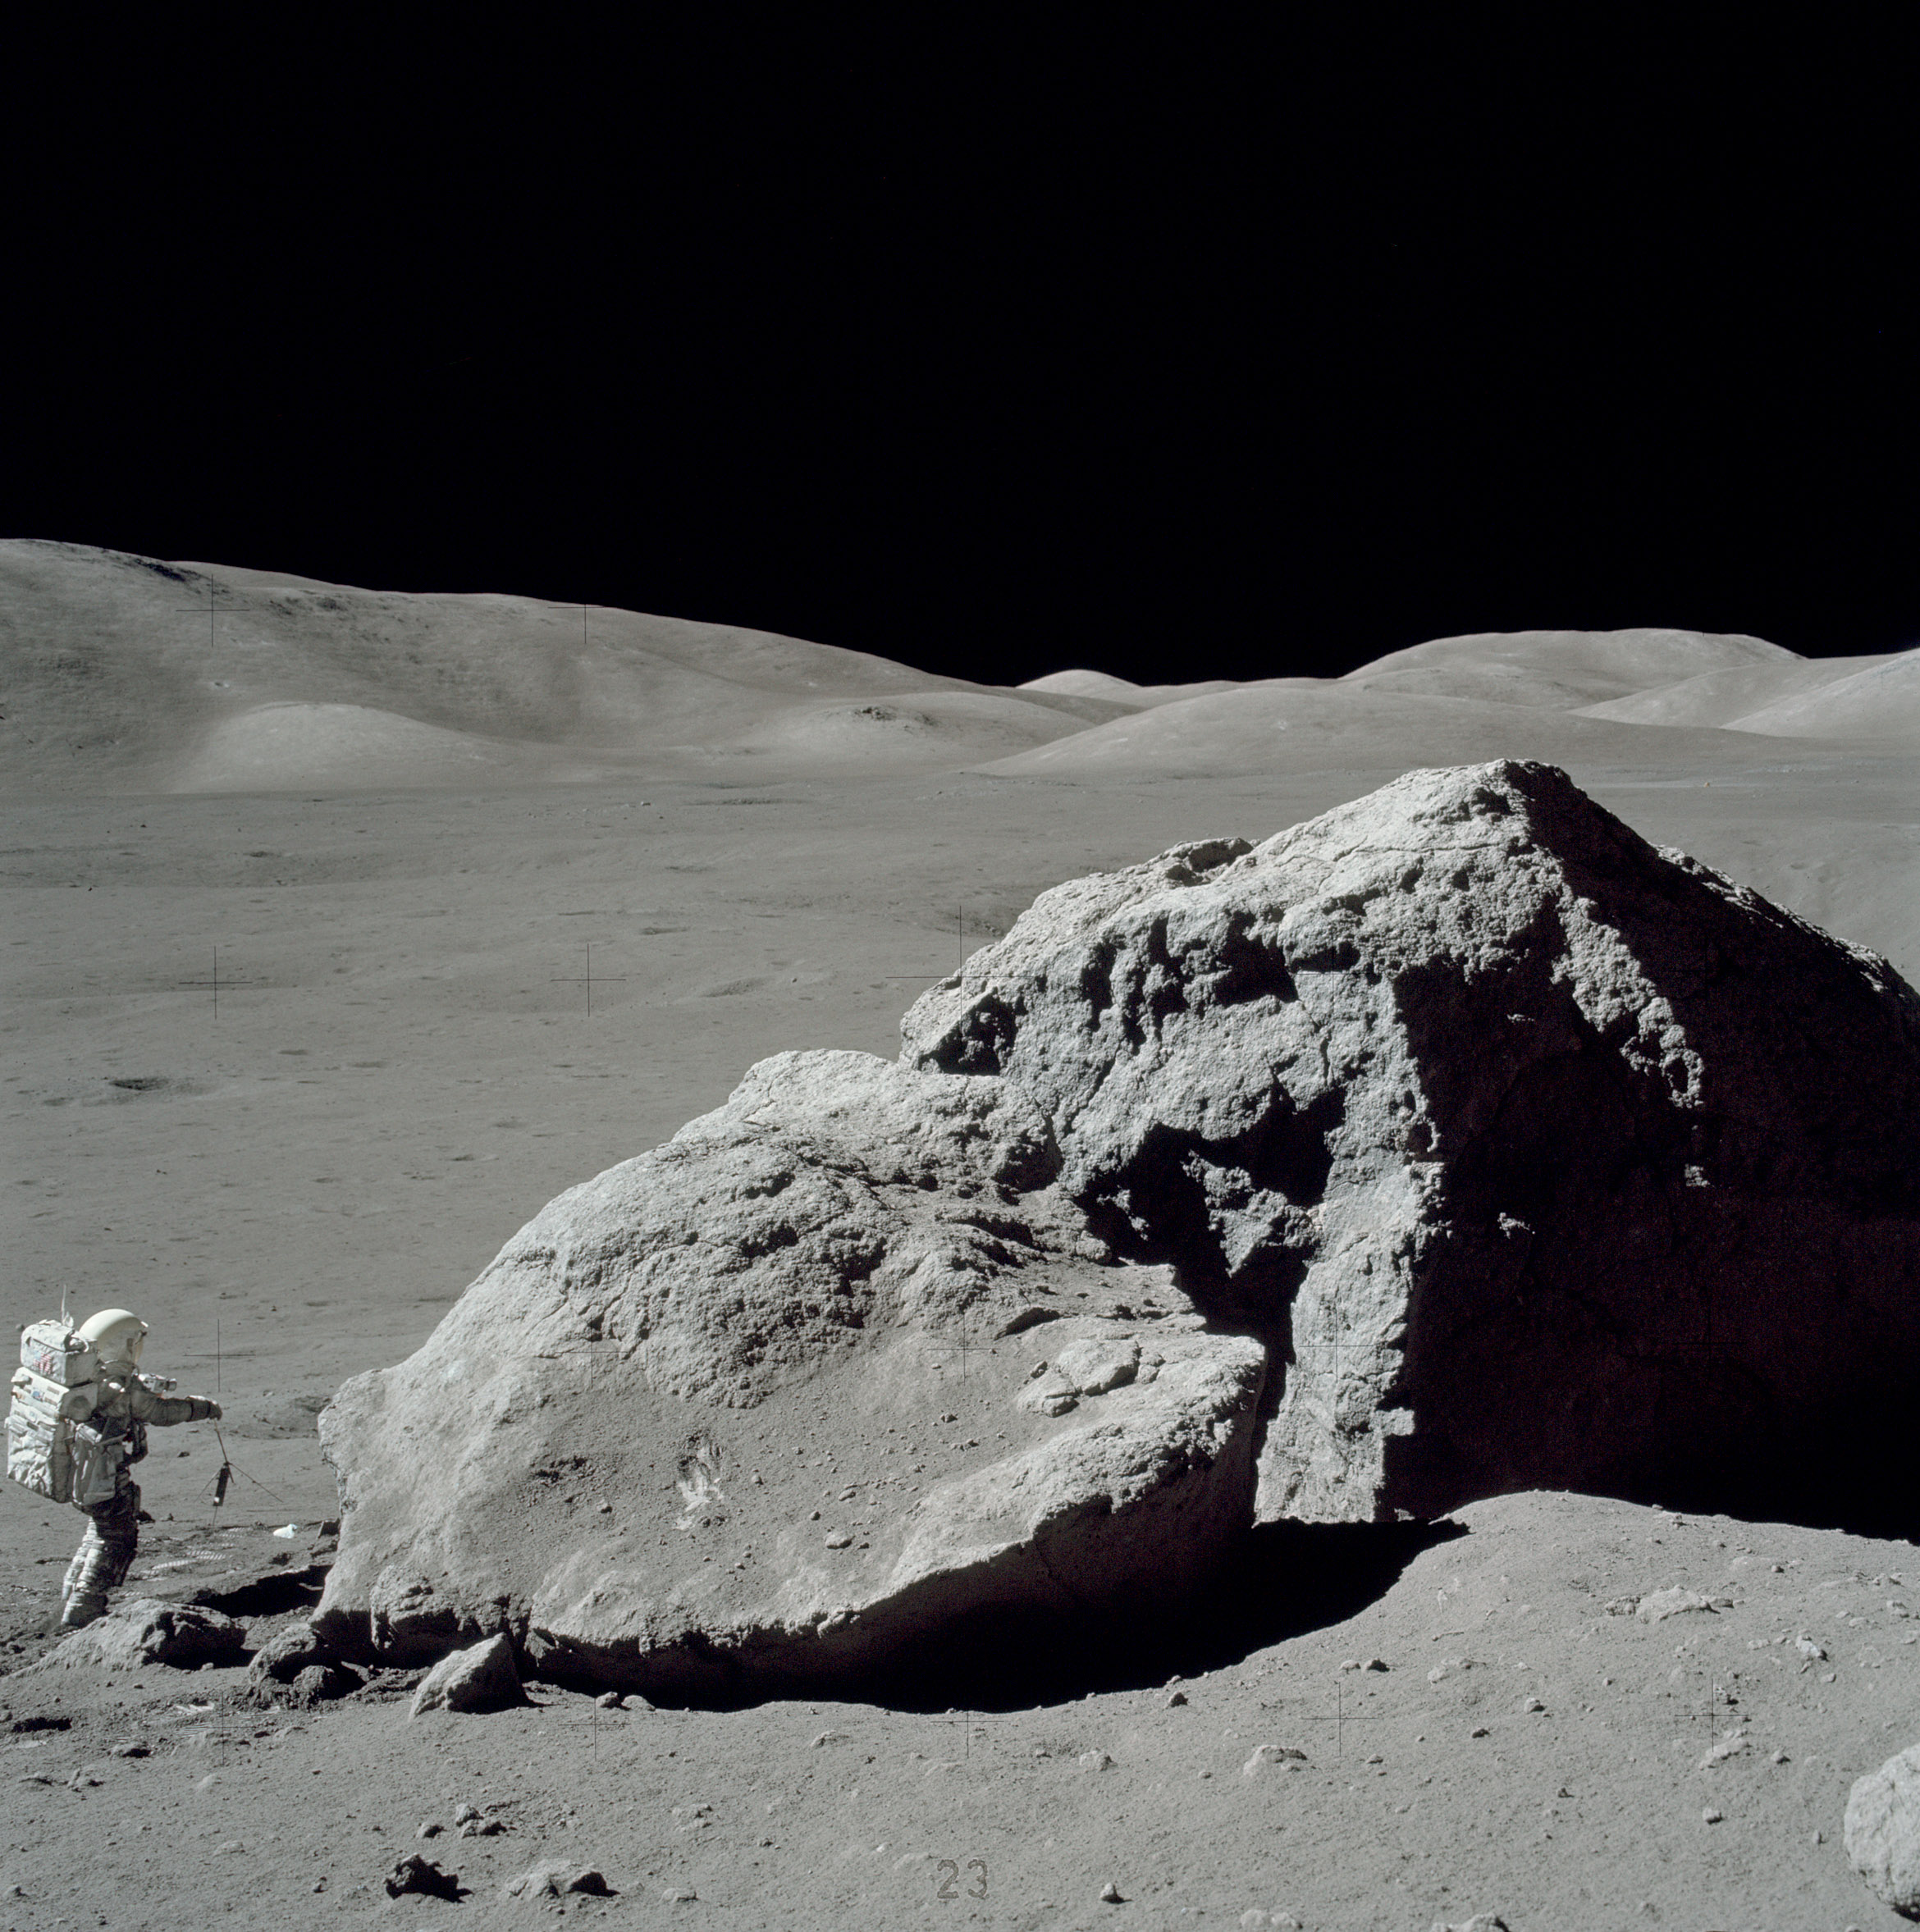 nasa archive photos of moon - photo #24